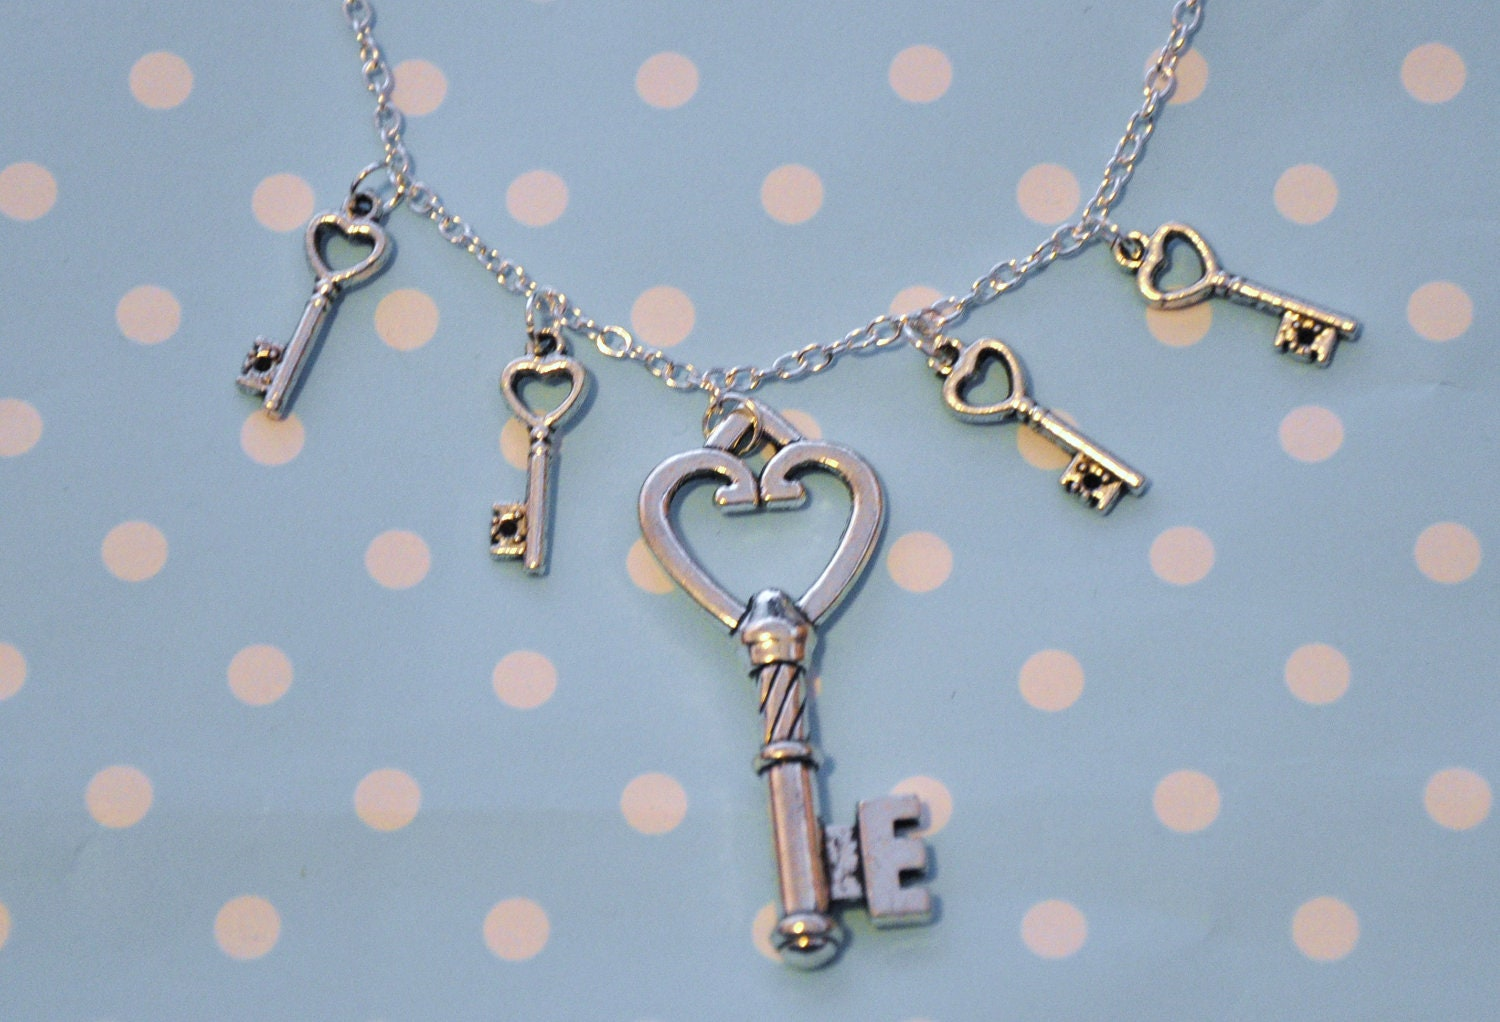 Key Charm Necklace - Cute, Pretty Silver Plated Jewelry - Four little keys surround one large key charm - Quirky, Fun Jewellery